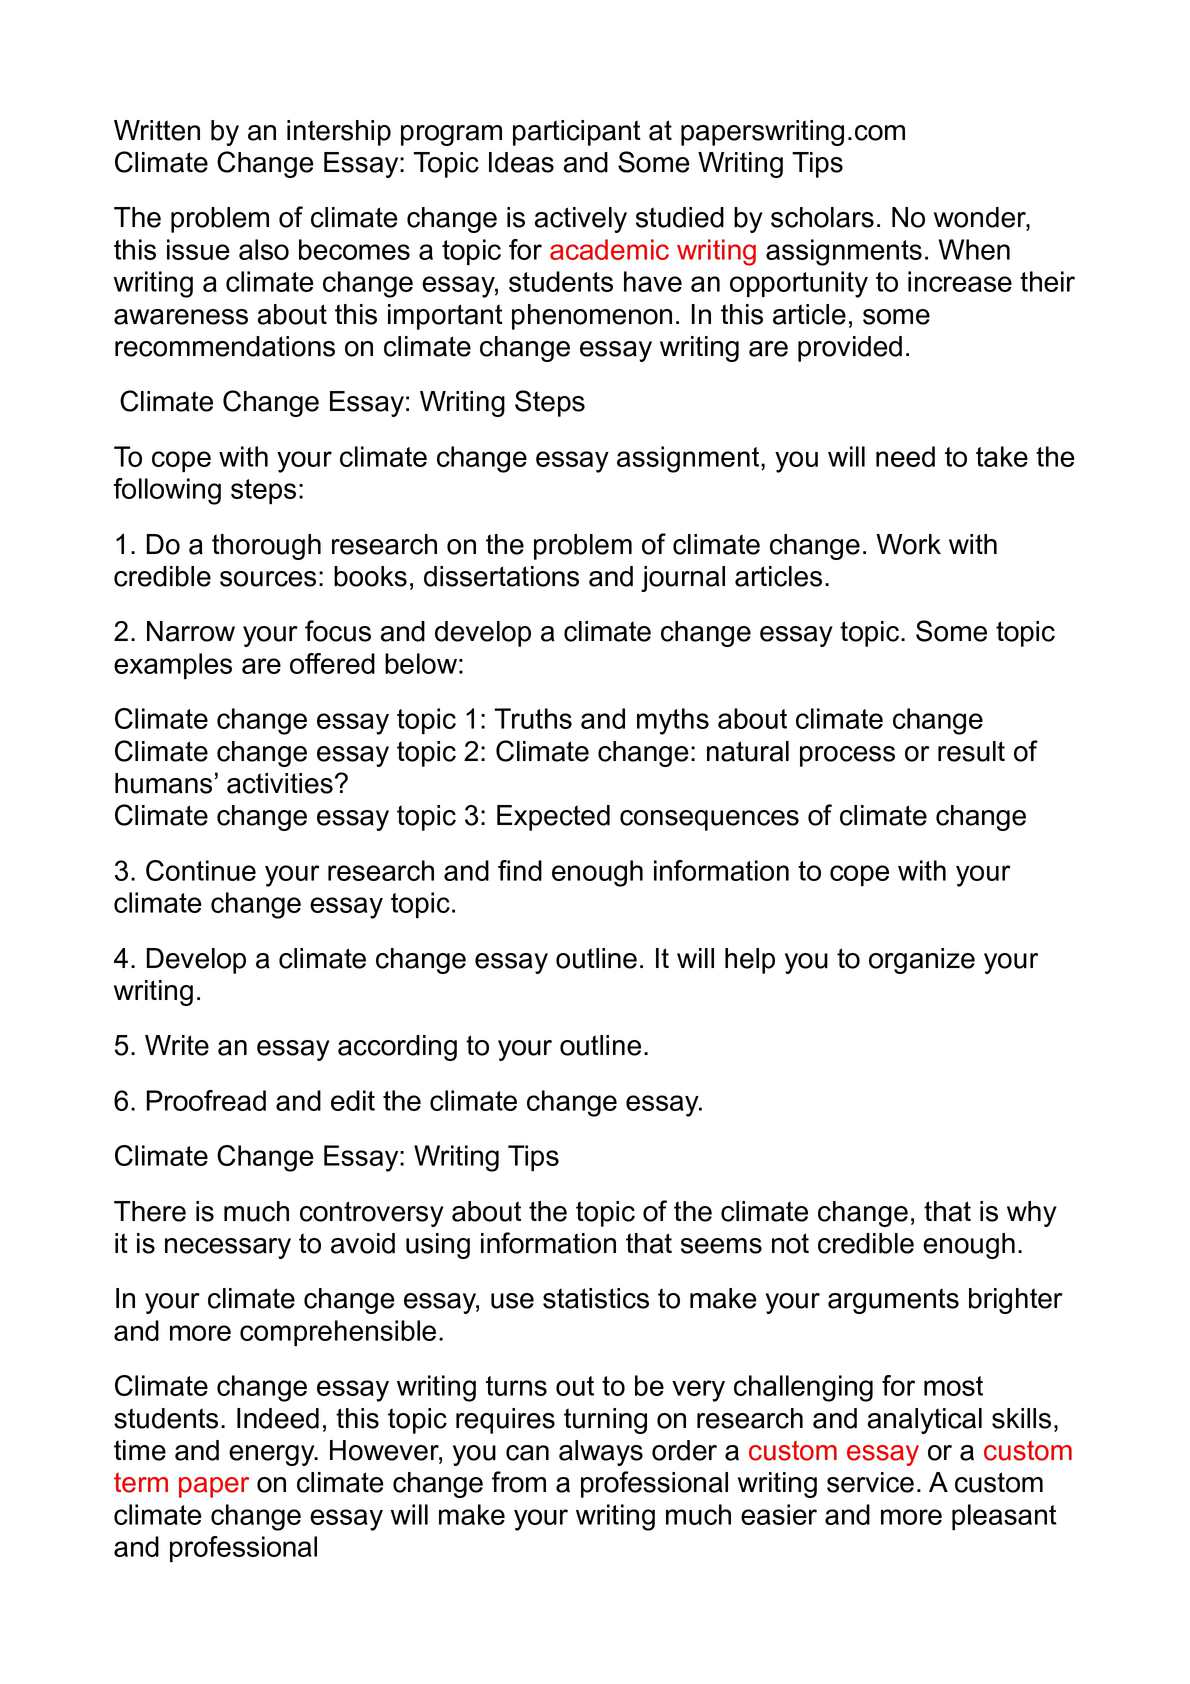 an essay on change Essay about climate changes nowadays climate change is the biggest problem of the human being it is already happening and represents one of the greatest environmental, social and economic threats facing the planet.